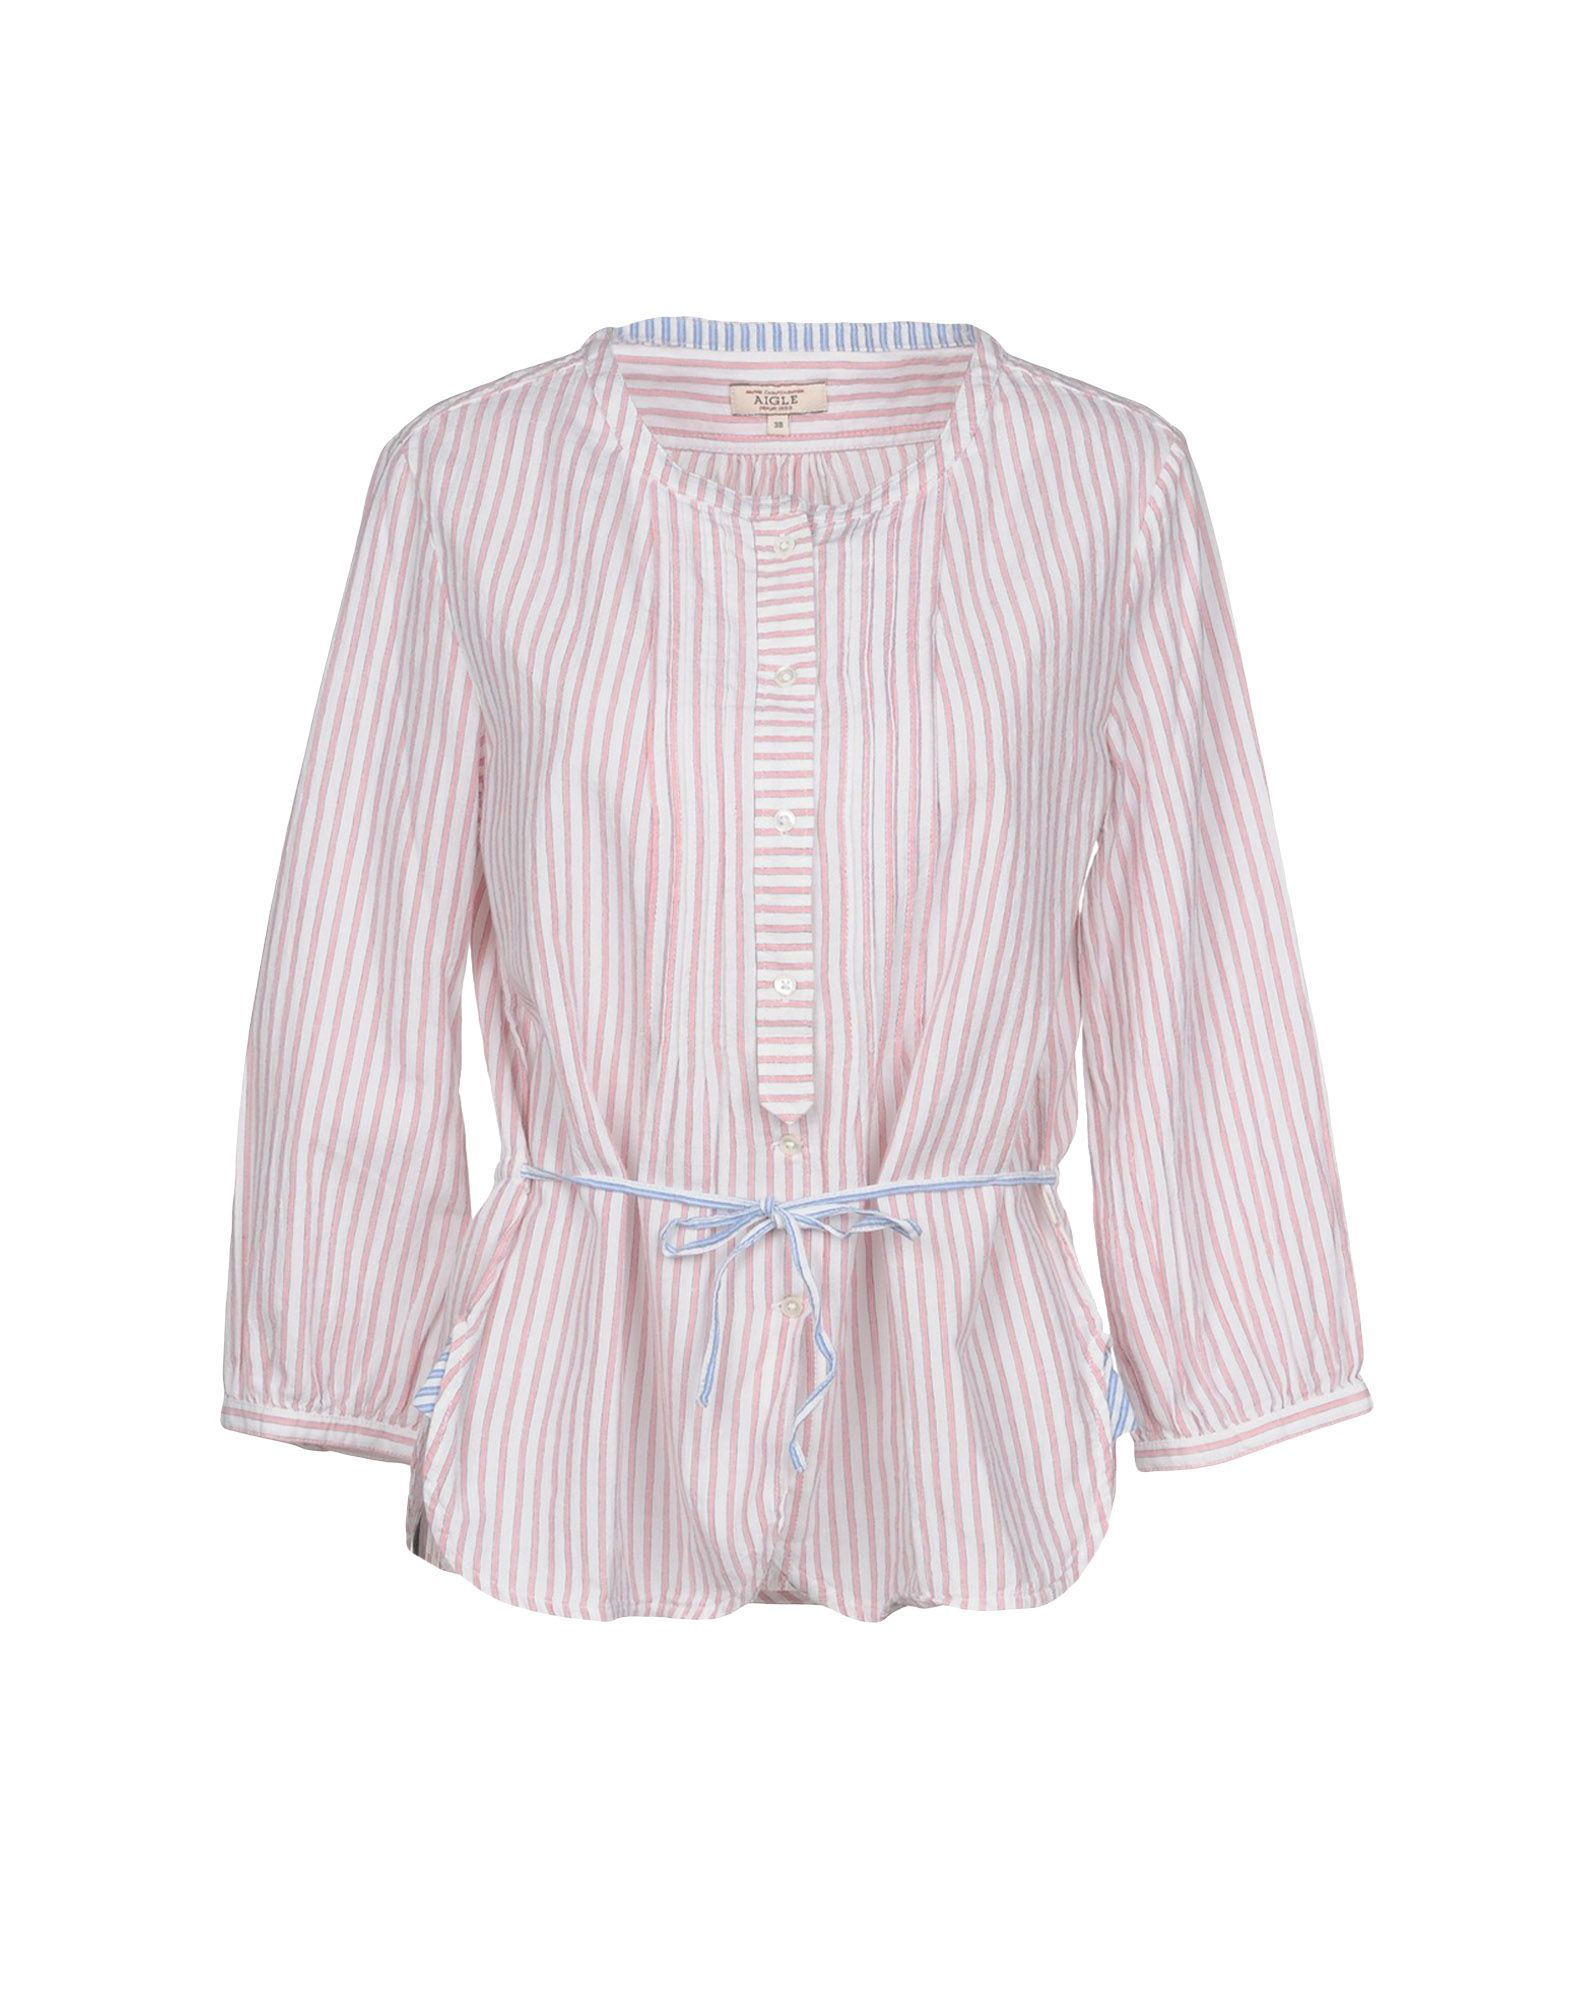 AIGLE Striped Shirt in White